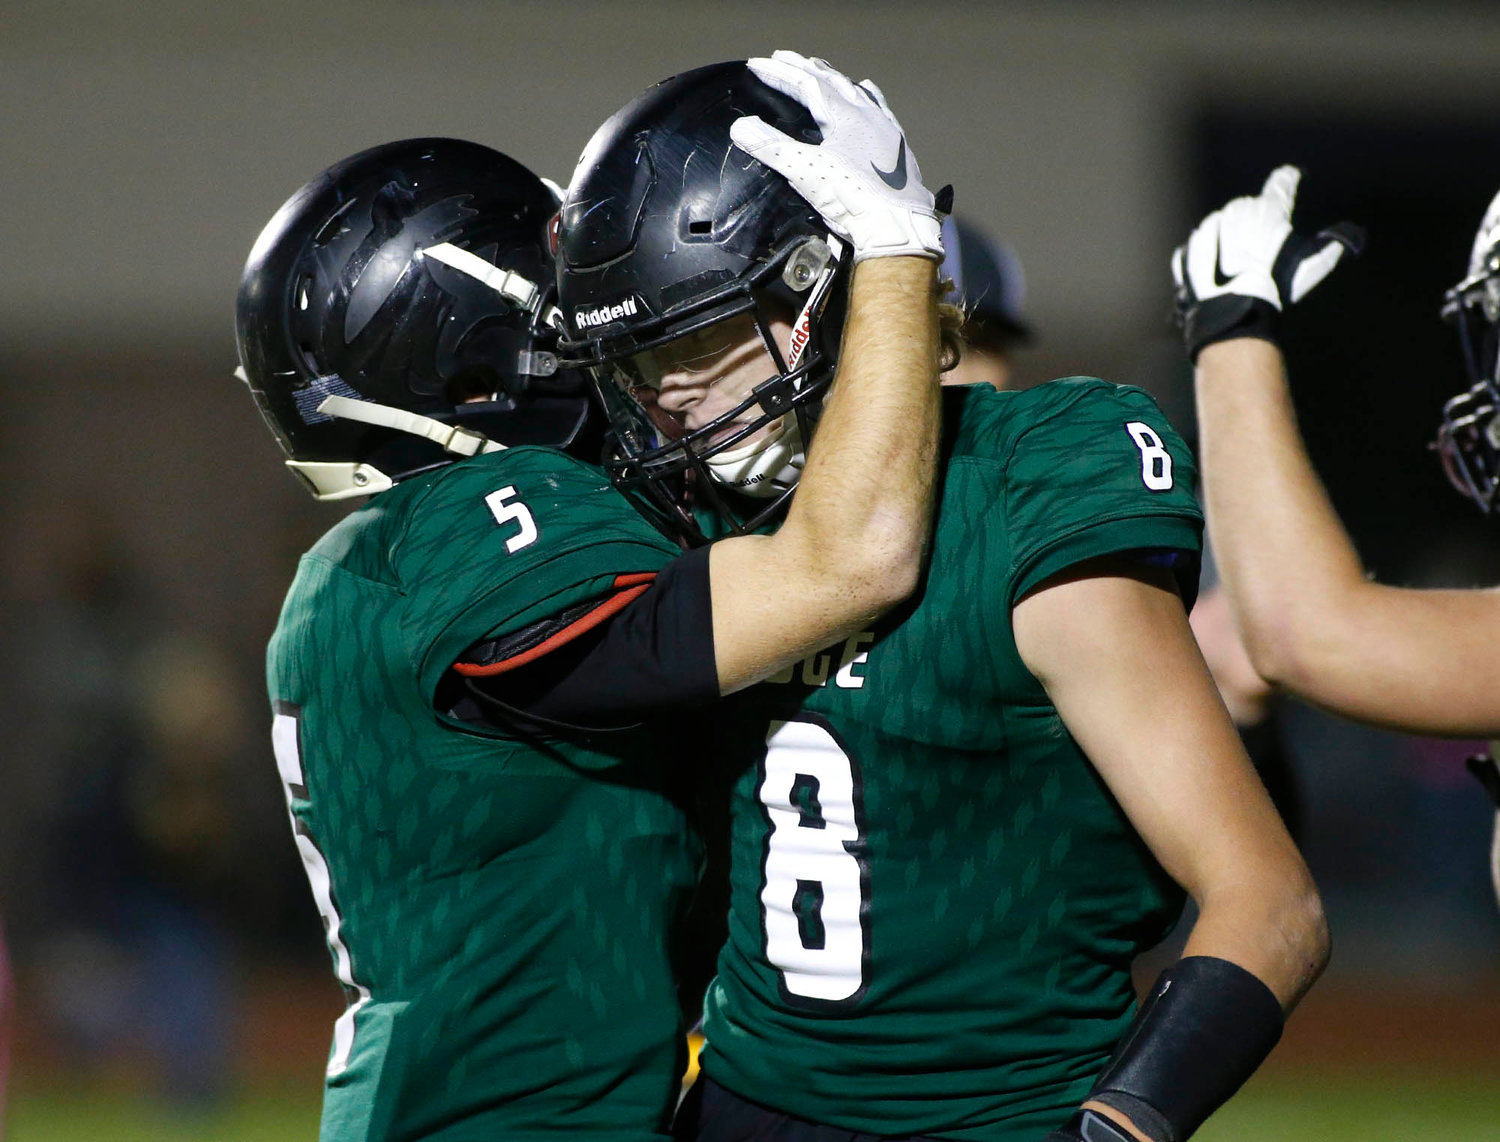 Mountain Ridge senior wide receiver Kyler Stancato (8) is congratulated by teammate Cole Mitchell after catching a touchdown pass against Sandra Day O'Connor during the first half of their 6A football game on Friday, Nov. 1.